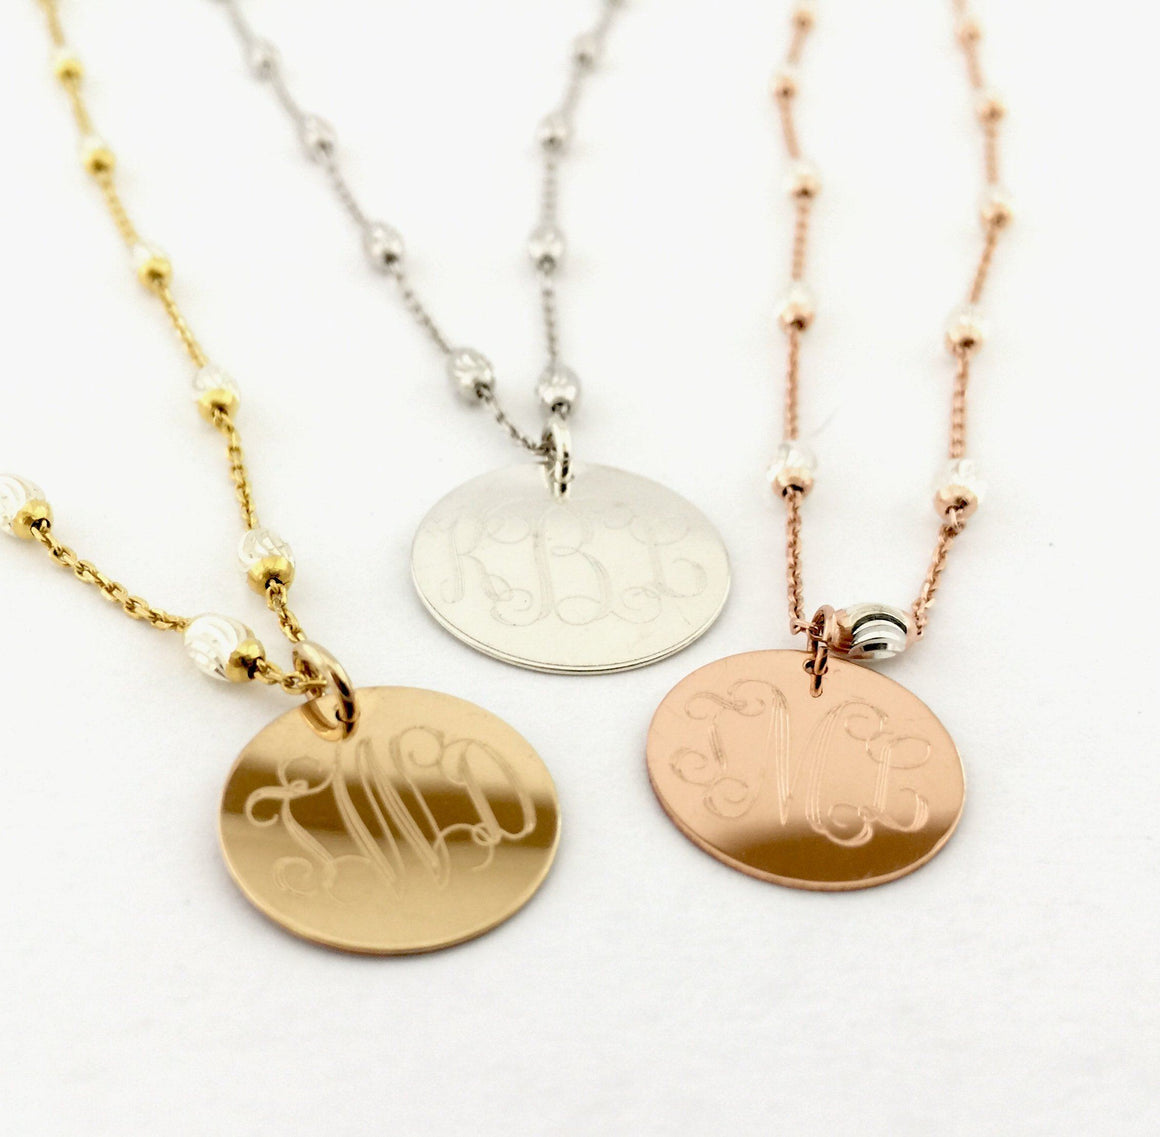 Saturn Chain Monogram Necklace in Silver  or Two-tone Gold Silver, or Rose Gold Silver